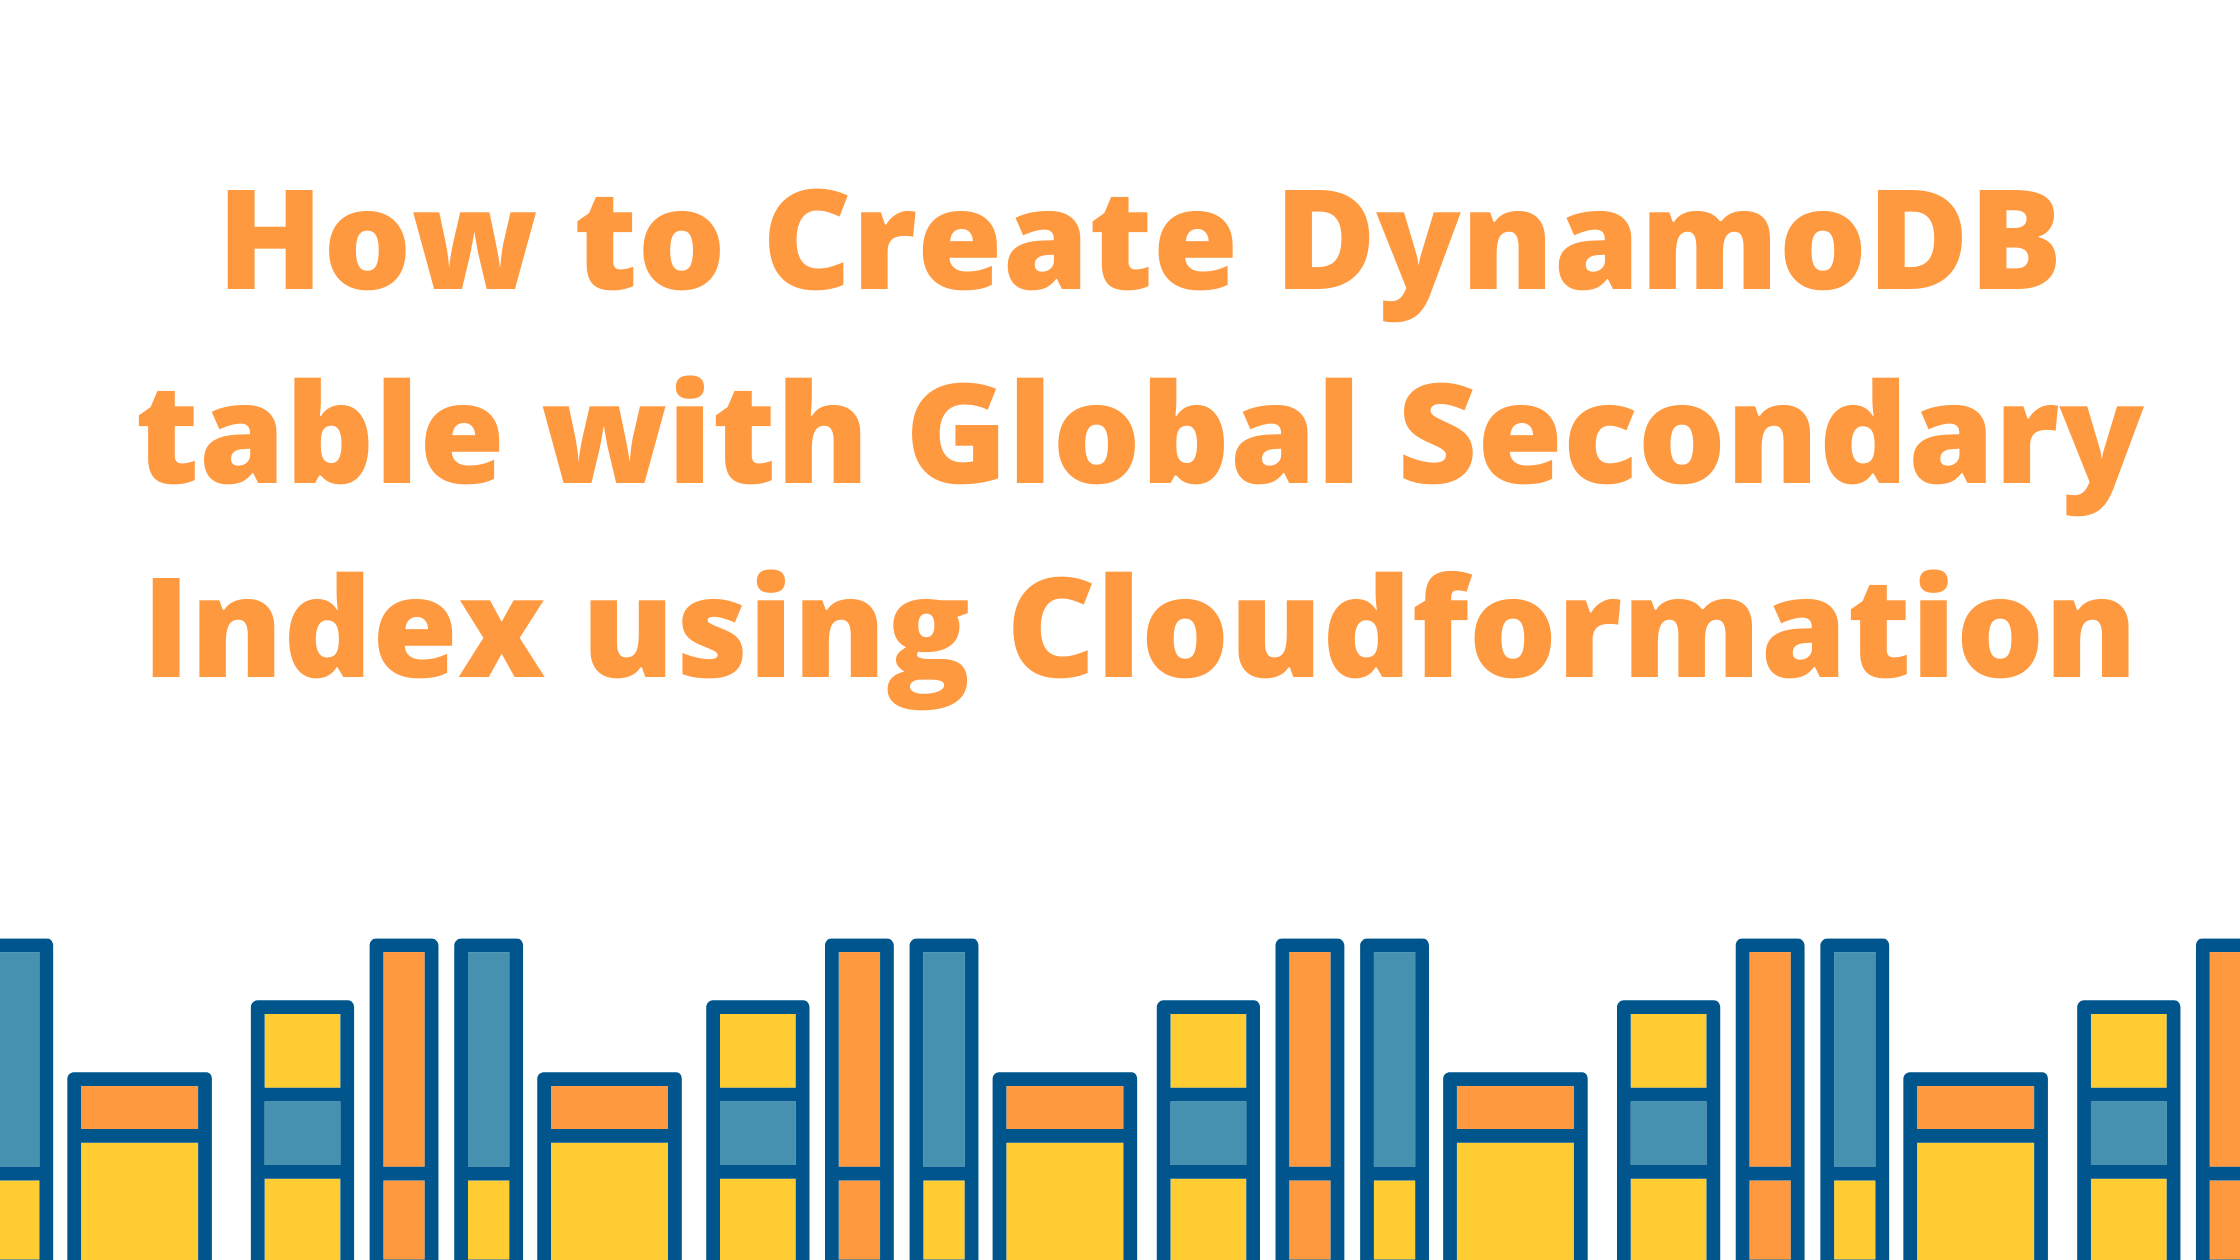 How to Create DynamoDB table with Global Secondary Index using Cloudformation